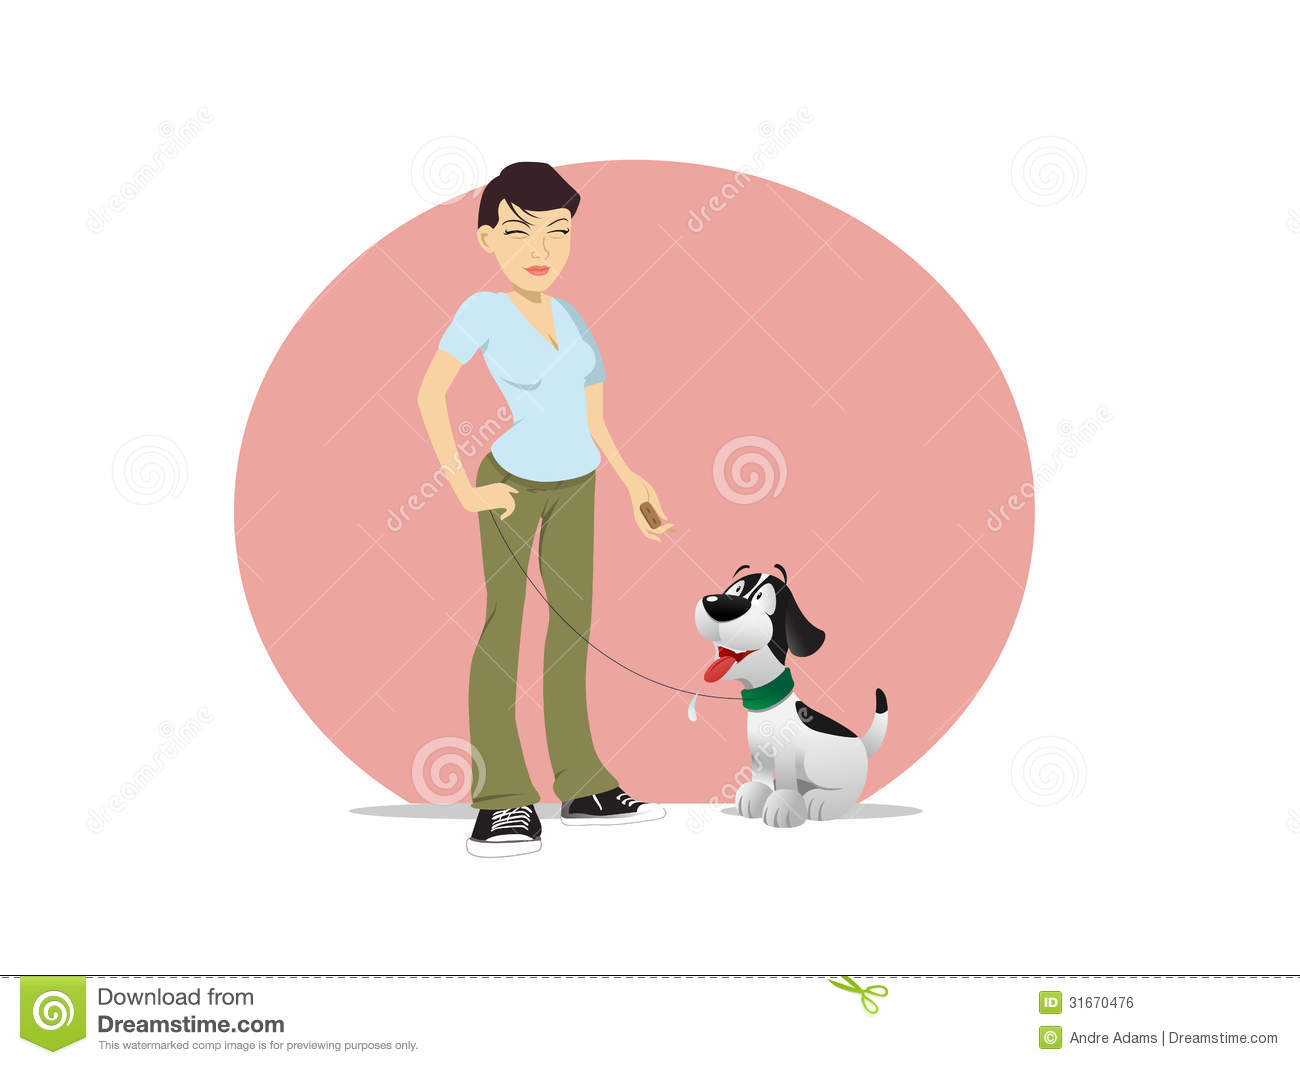 Asian Woman Dog Owner Treat Royalty Free Stock Image - Image: 31670476